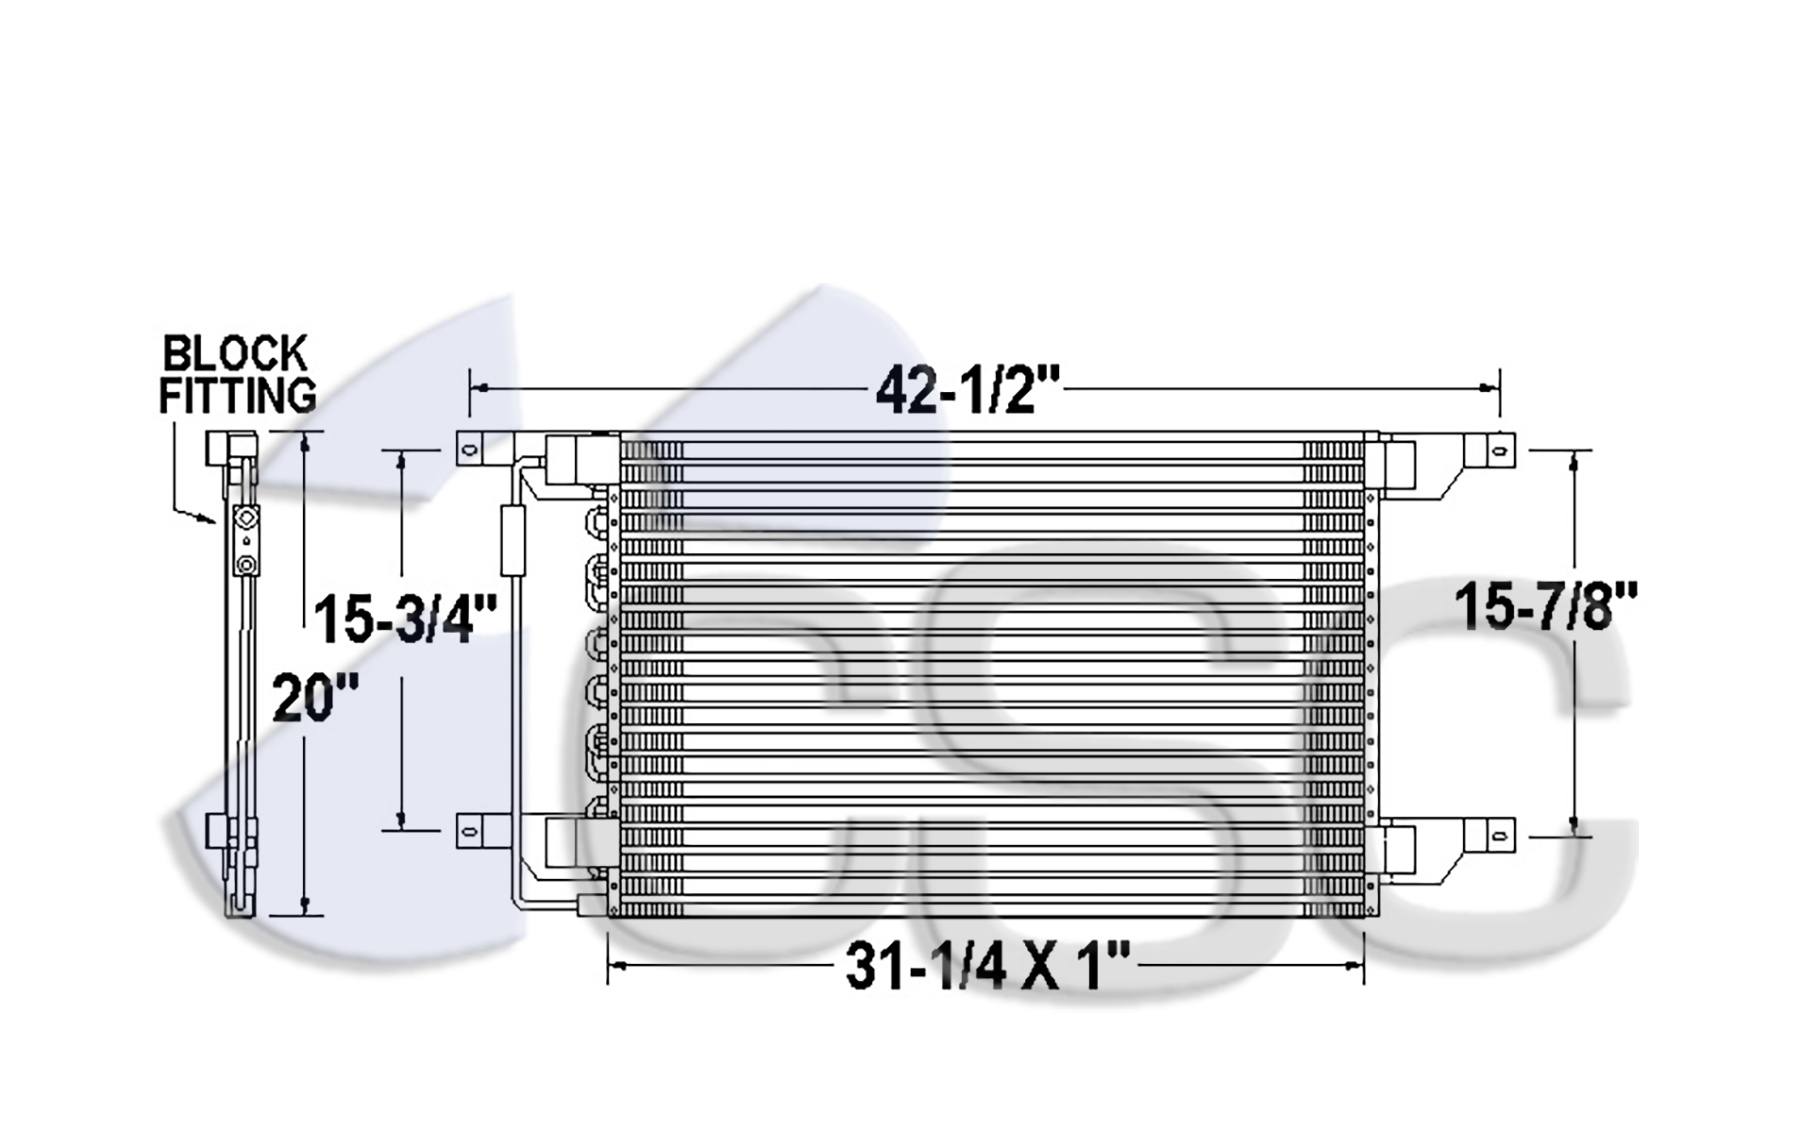 Freightliner - Condensers - Truck Products on